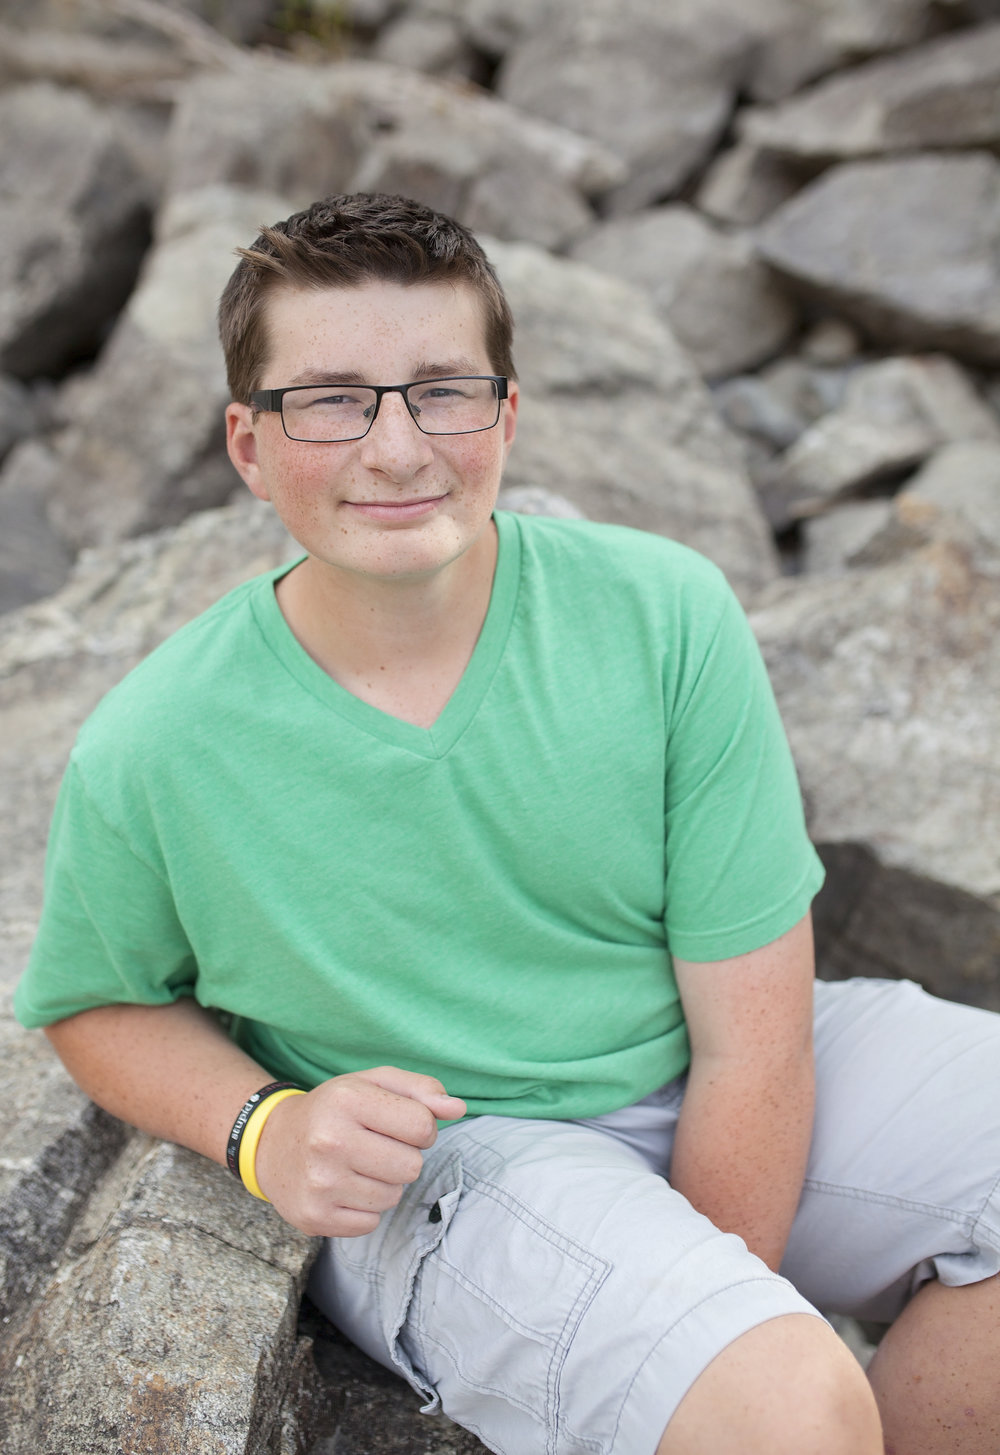 Mac was diagnosed with Ewing's Sarcoma at 12 years old in 2012.  Mac was the first recipient of the Santa Photo Fundraiser. He spent 9 months over at Seattle Children's.  Mac is currently a Junior.